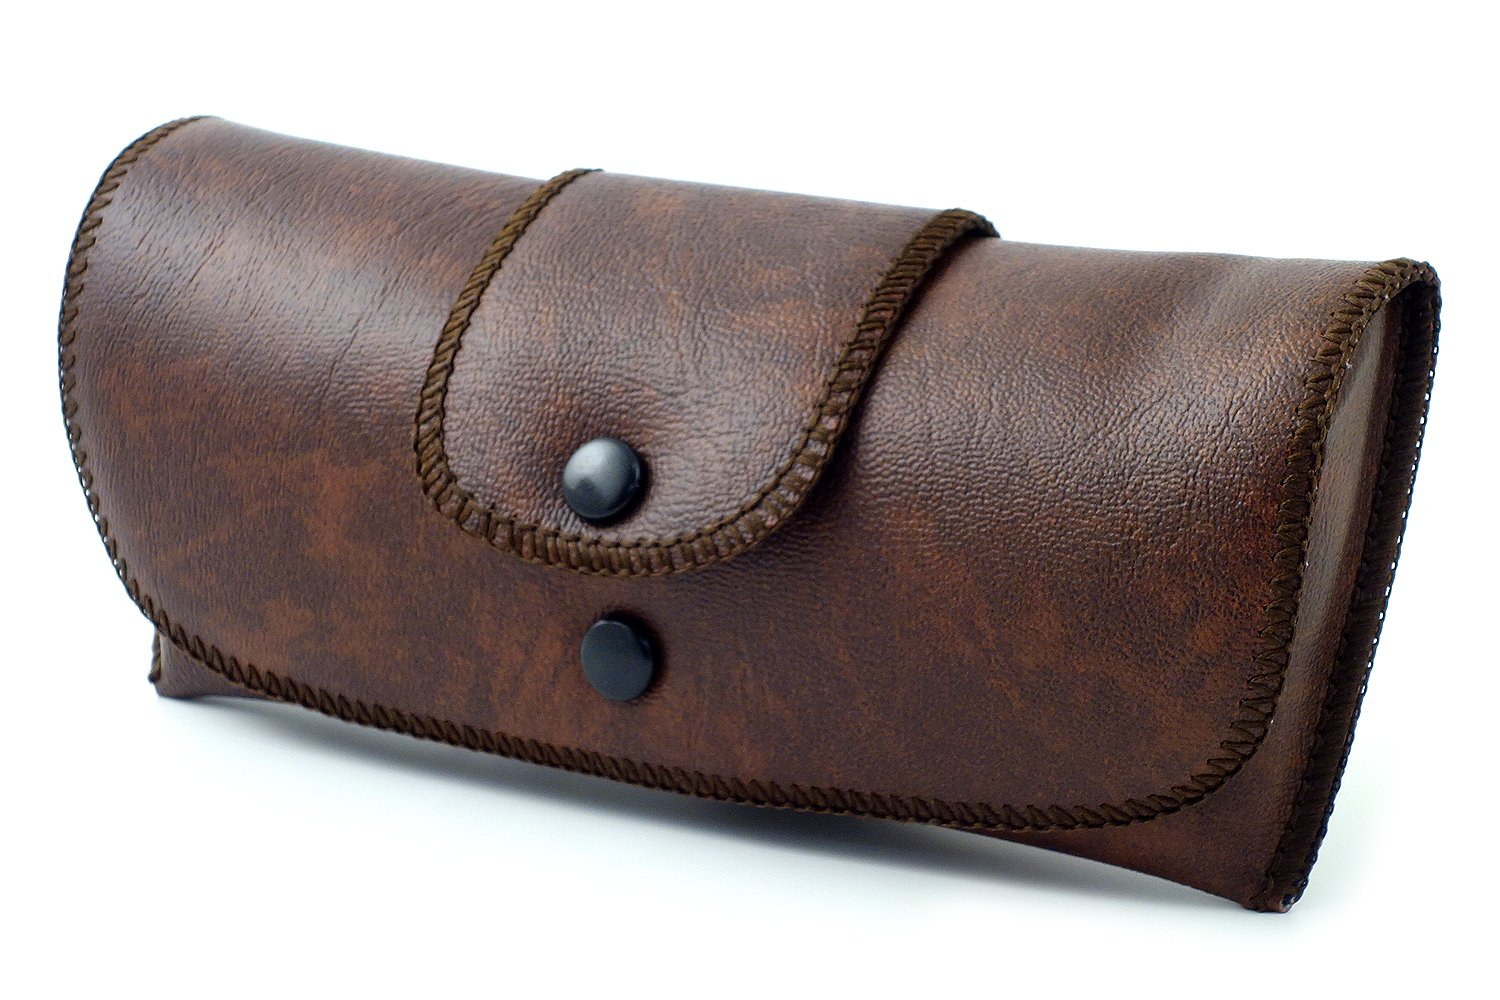 Soft Eyeglass Case Faux Leather Attaches to Belt Horizontal Brown 6.5